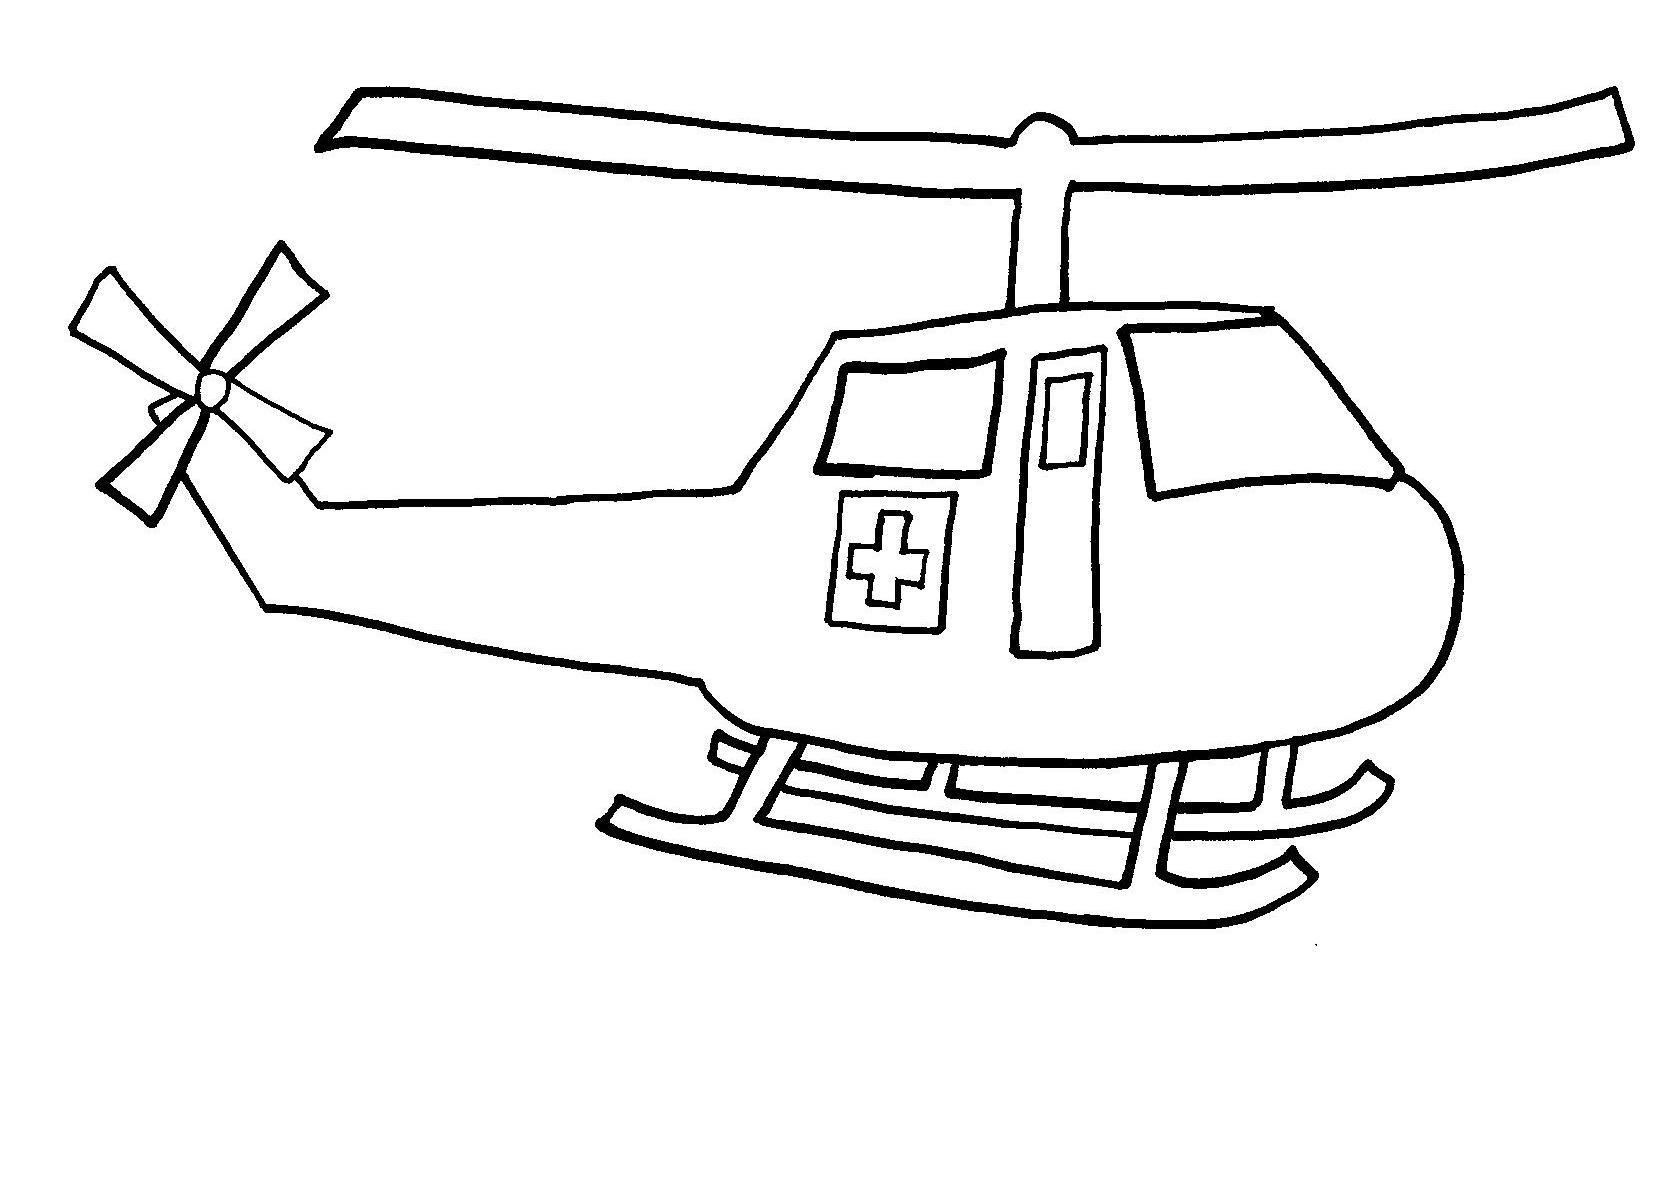 helicopter colouring pictures free printable helicopter coloring pages for kids helicopter pictures colouring 1 1